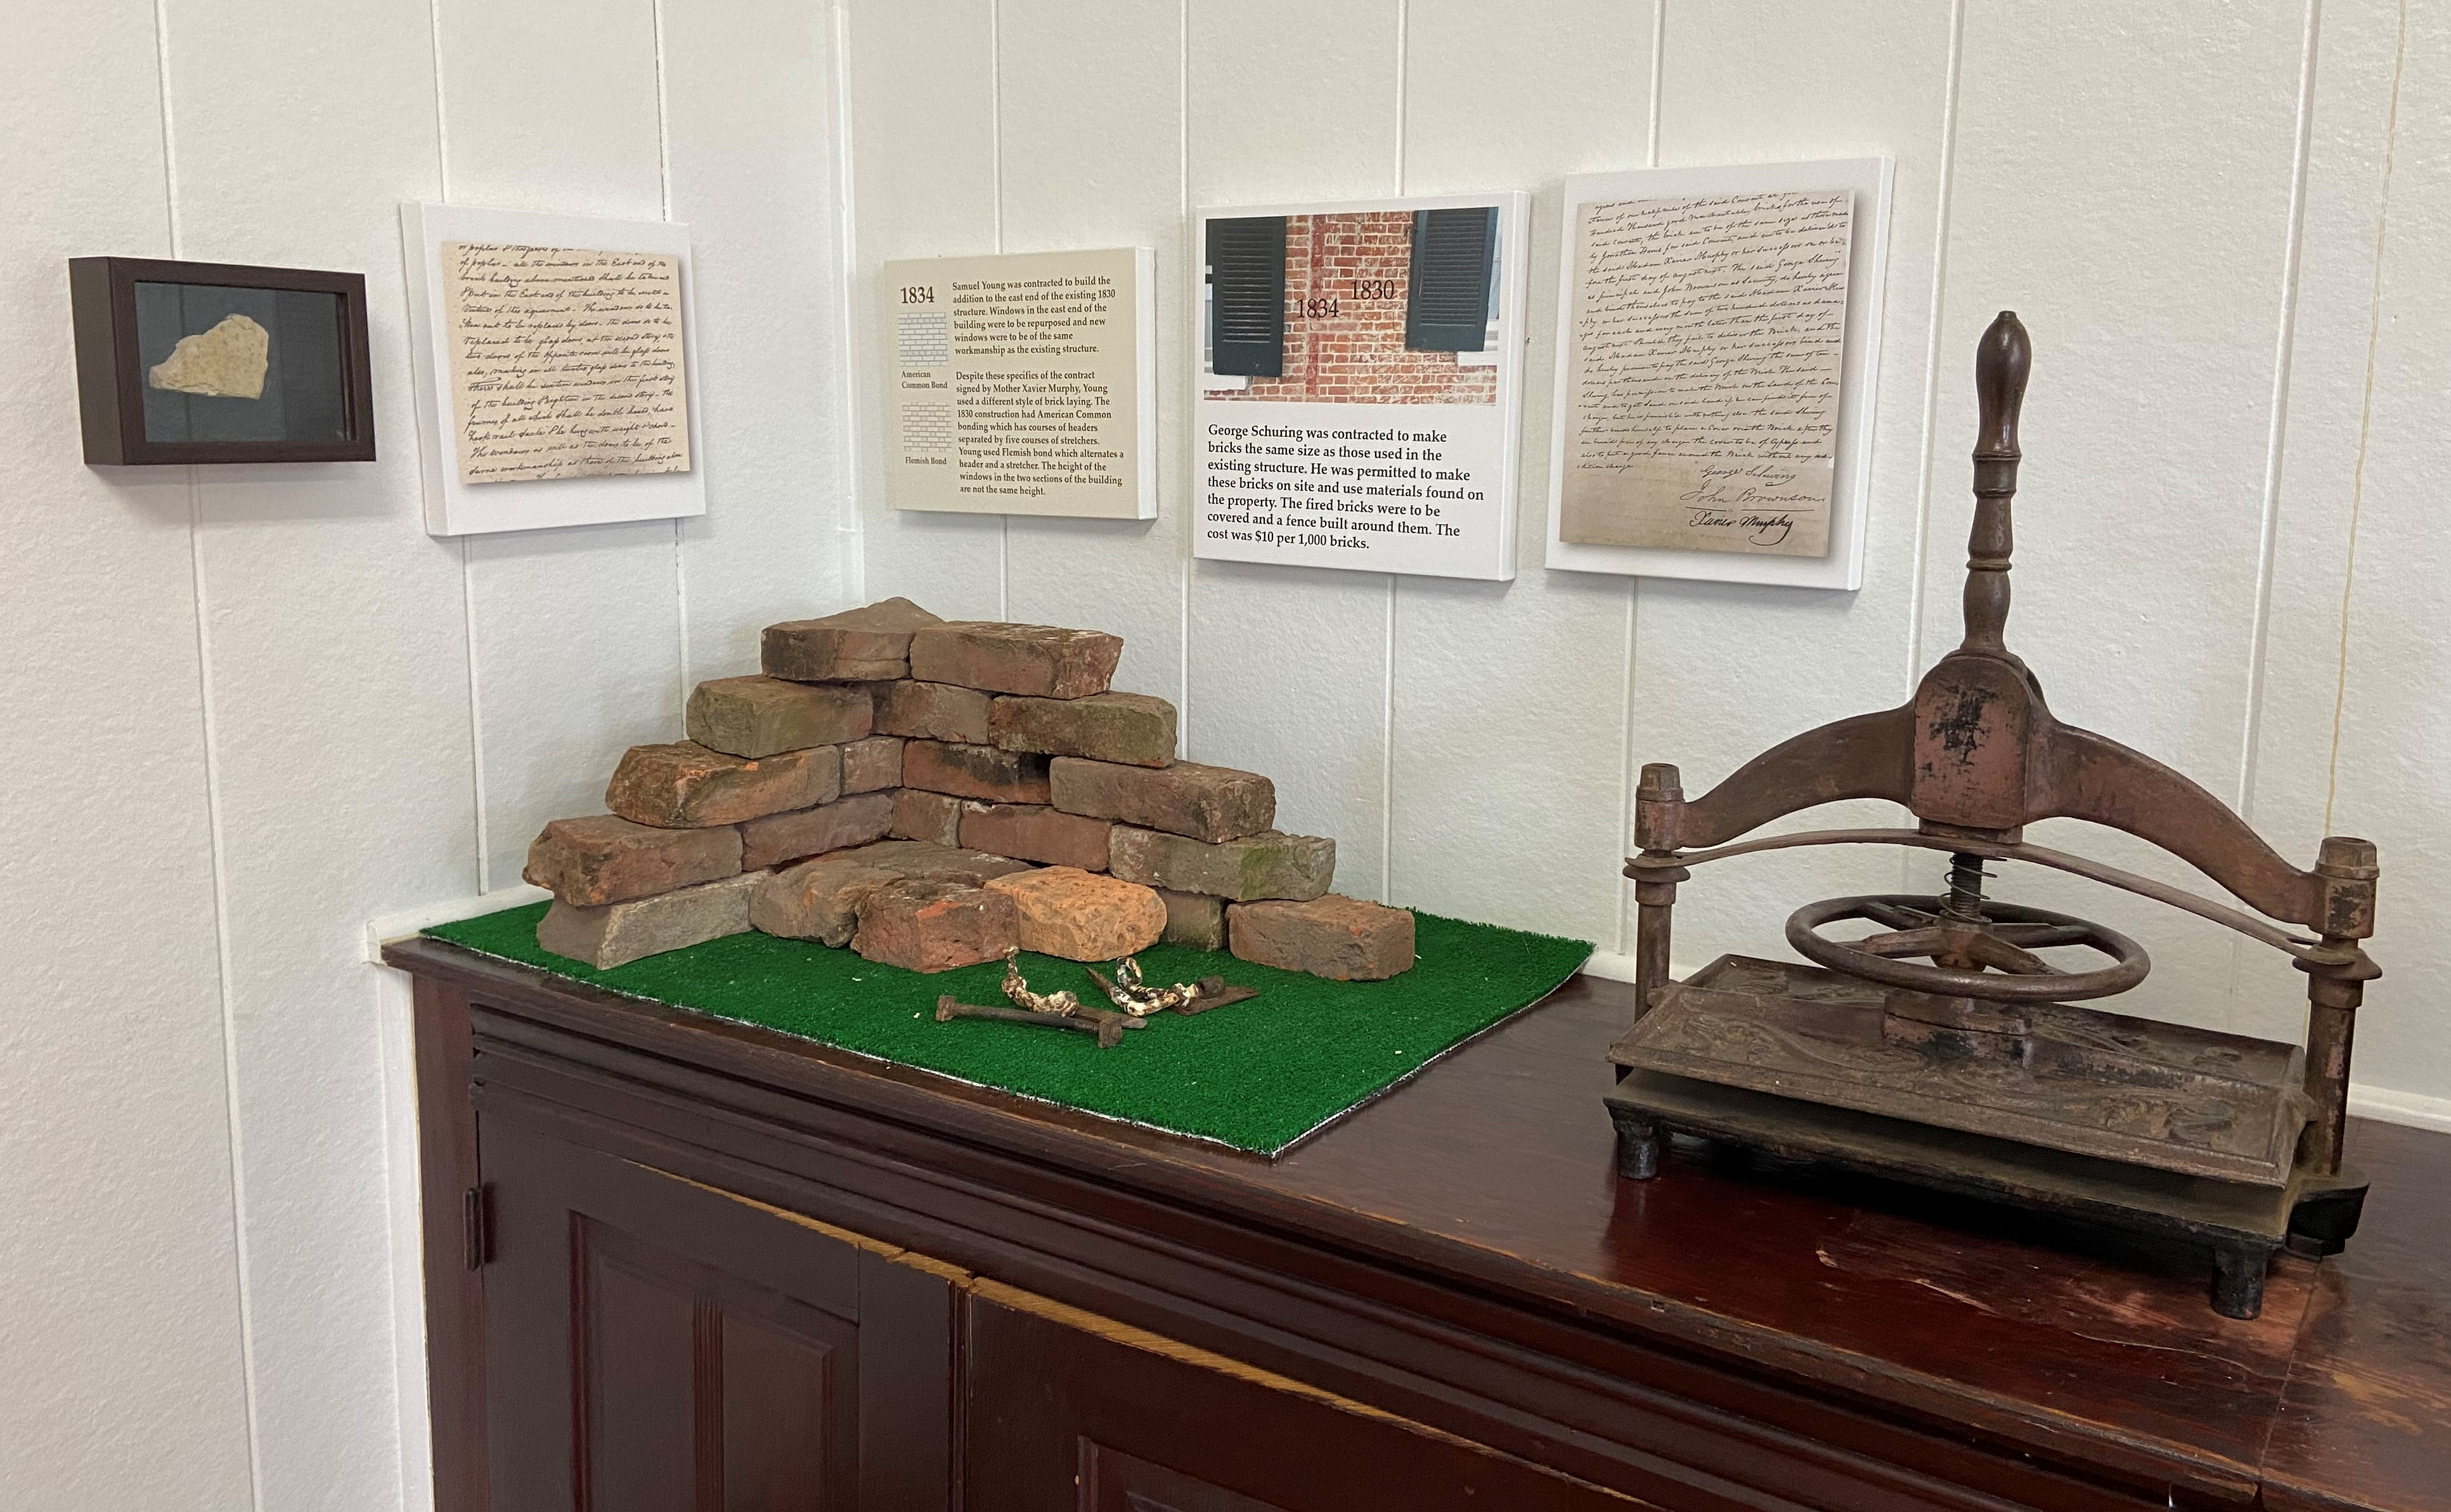 A number of the bricks used to build the main building were made on site using clay dug from a pit on the grounds.